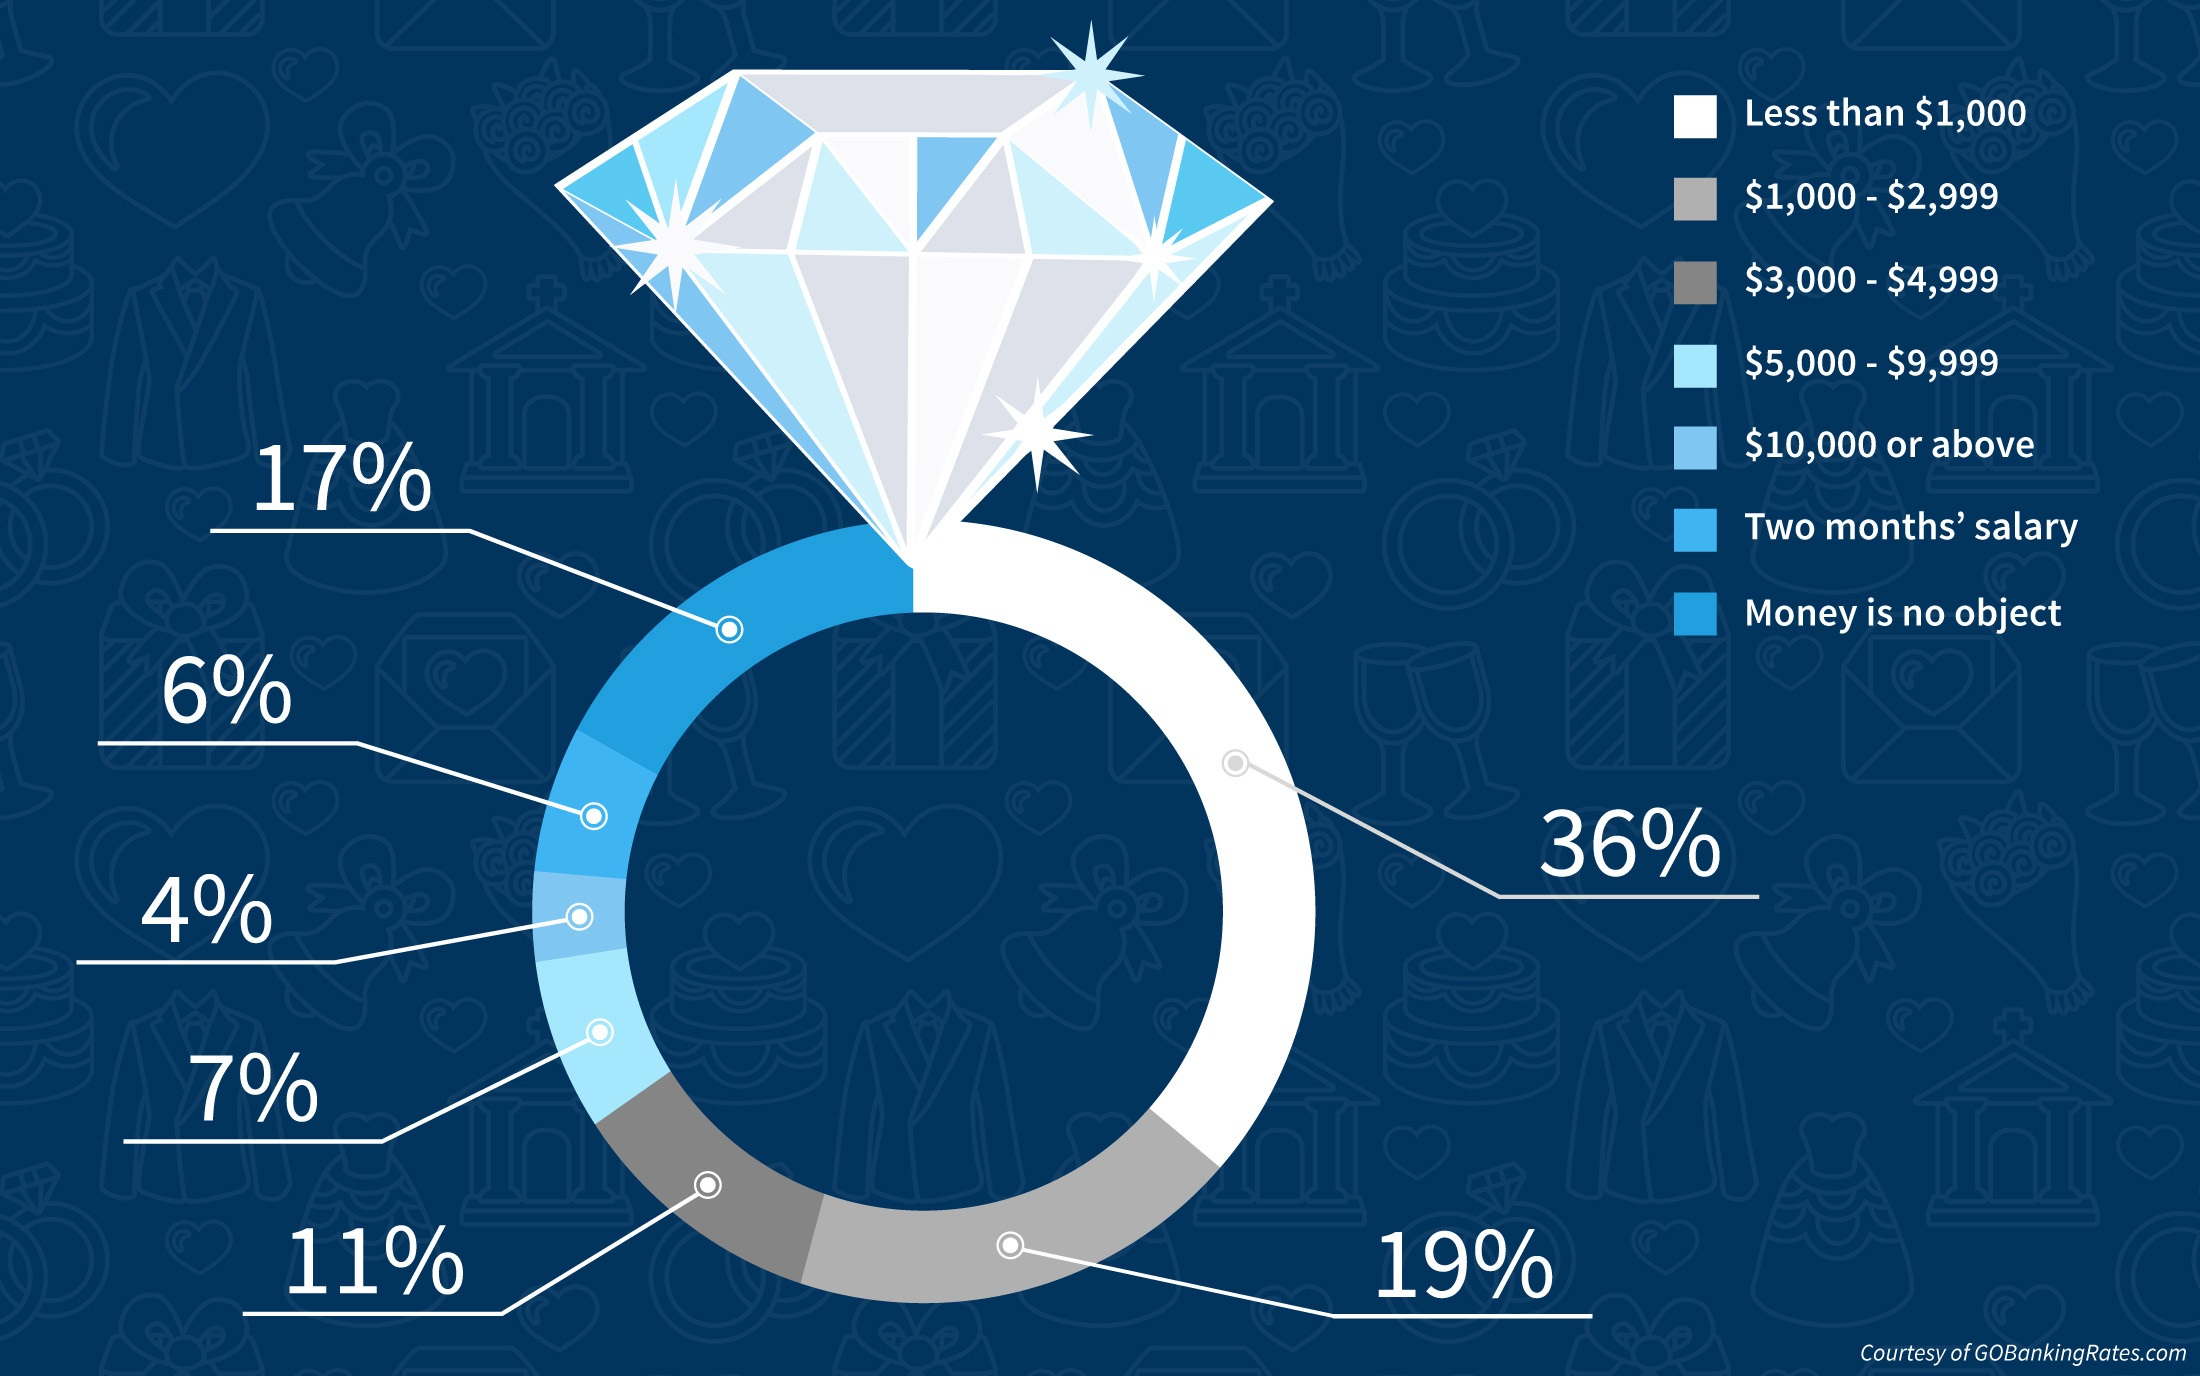 1 in 3 Americans Think You Should Spend Less Than $1,000 on an Engagement Ring